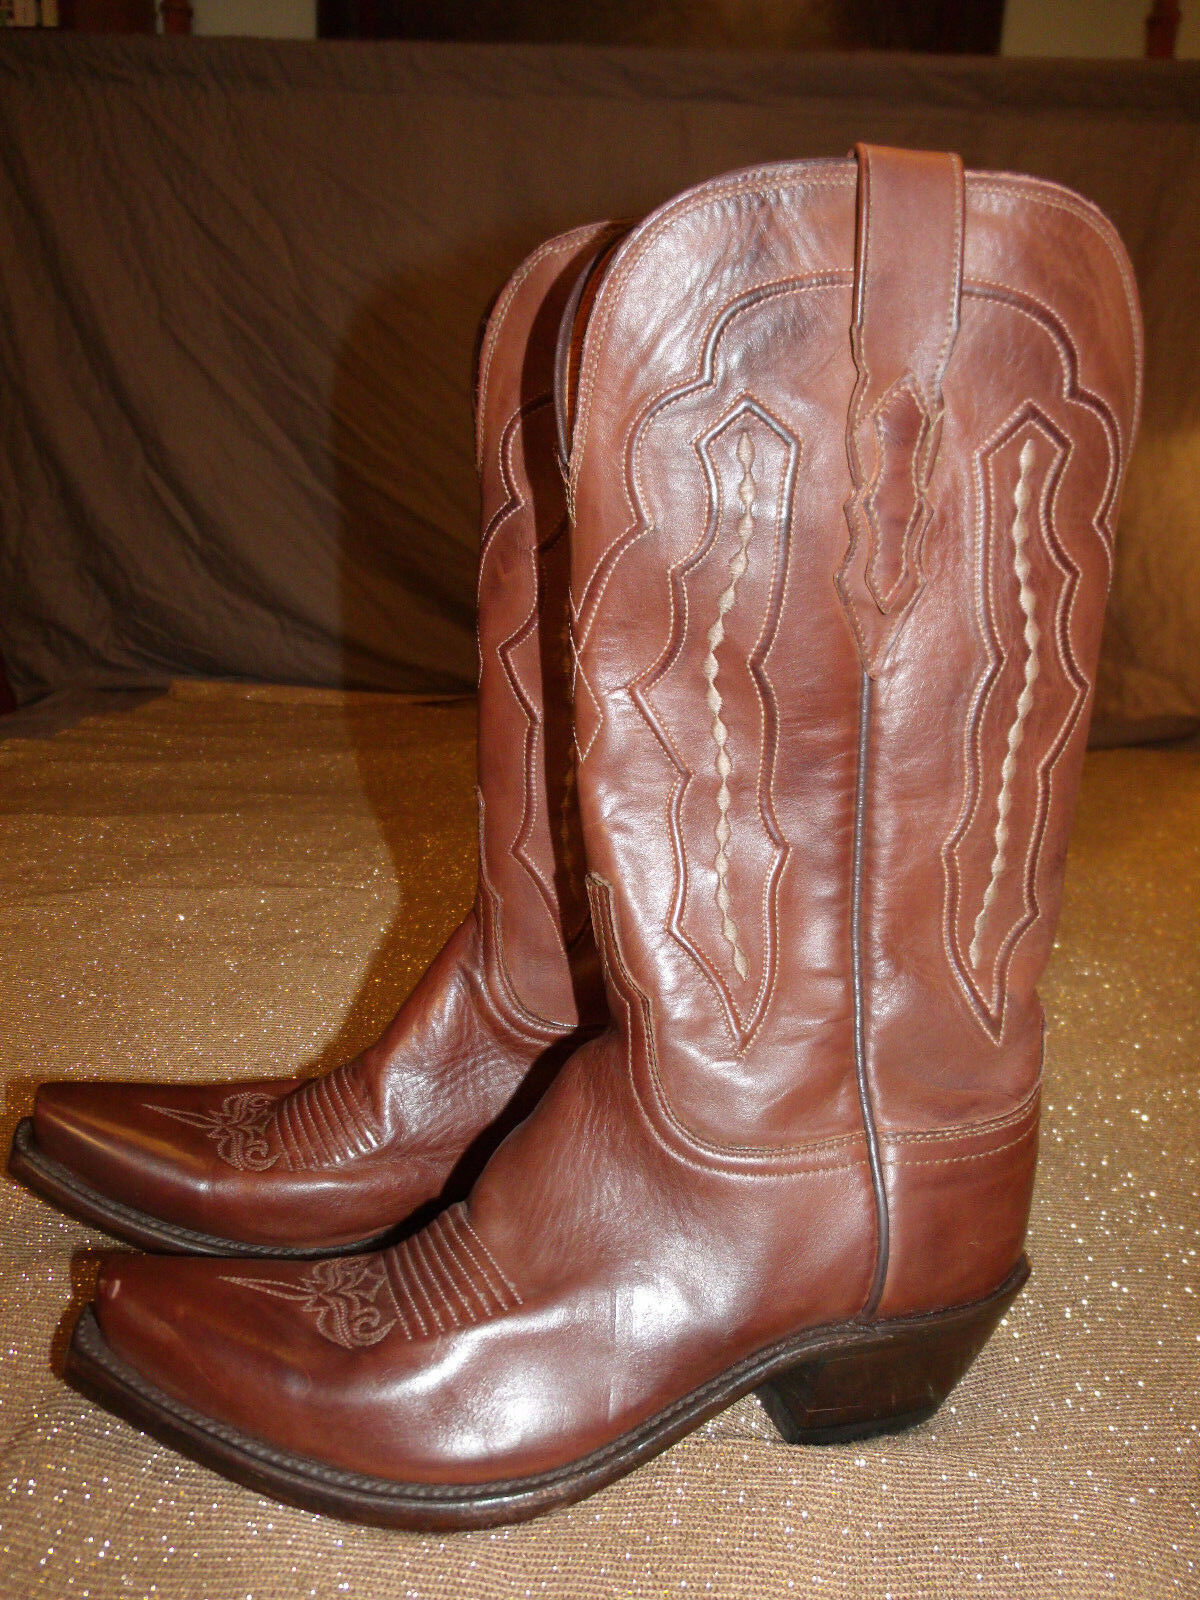 Lucchese Classics M5004.S54 Donna Grace-Tan Ranch Hand Riding Boots size 7.0B